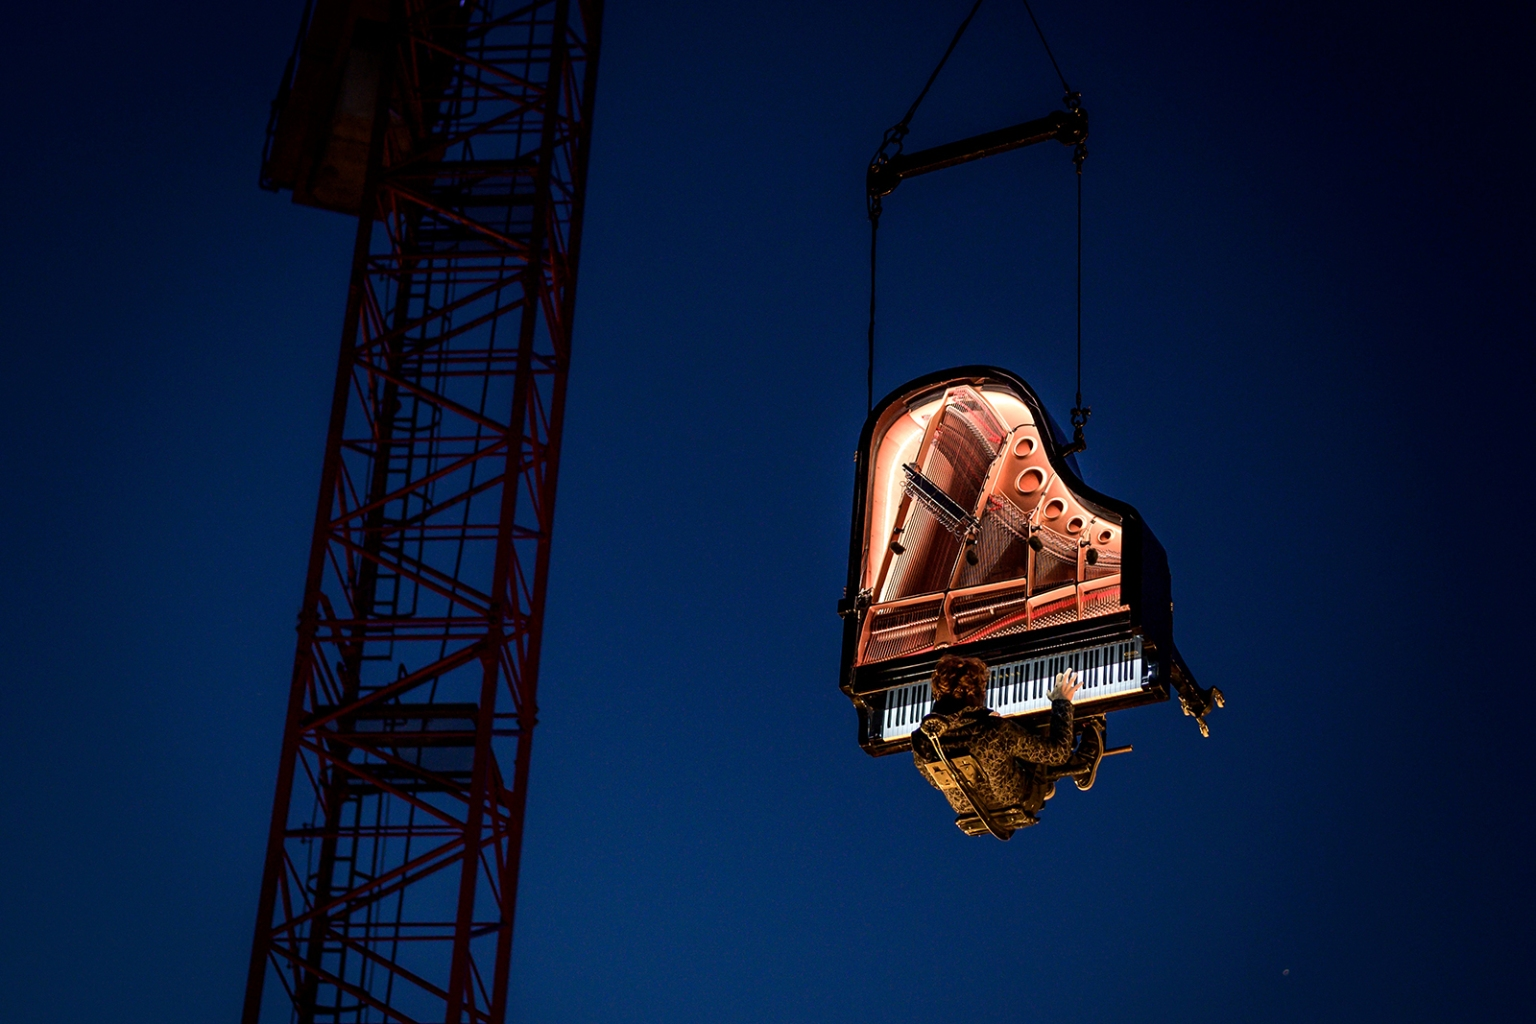 "Swiss pianist and composer Alain Roche performs Chantier suspended in the air with his grand piano from crane on Aug. 16 during the 20th ""Jeux du Castrum"" a multidisciplinary festival in Yverdon-les-Bains. FABRICE COFFRINI/AFP/Getty Images"